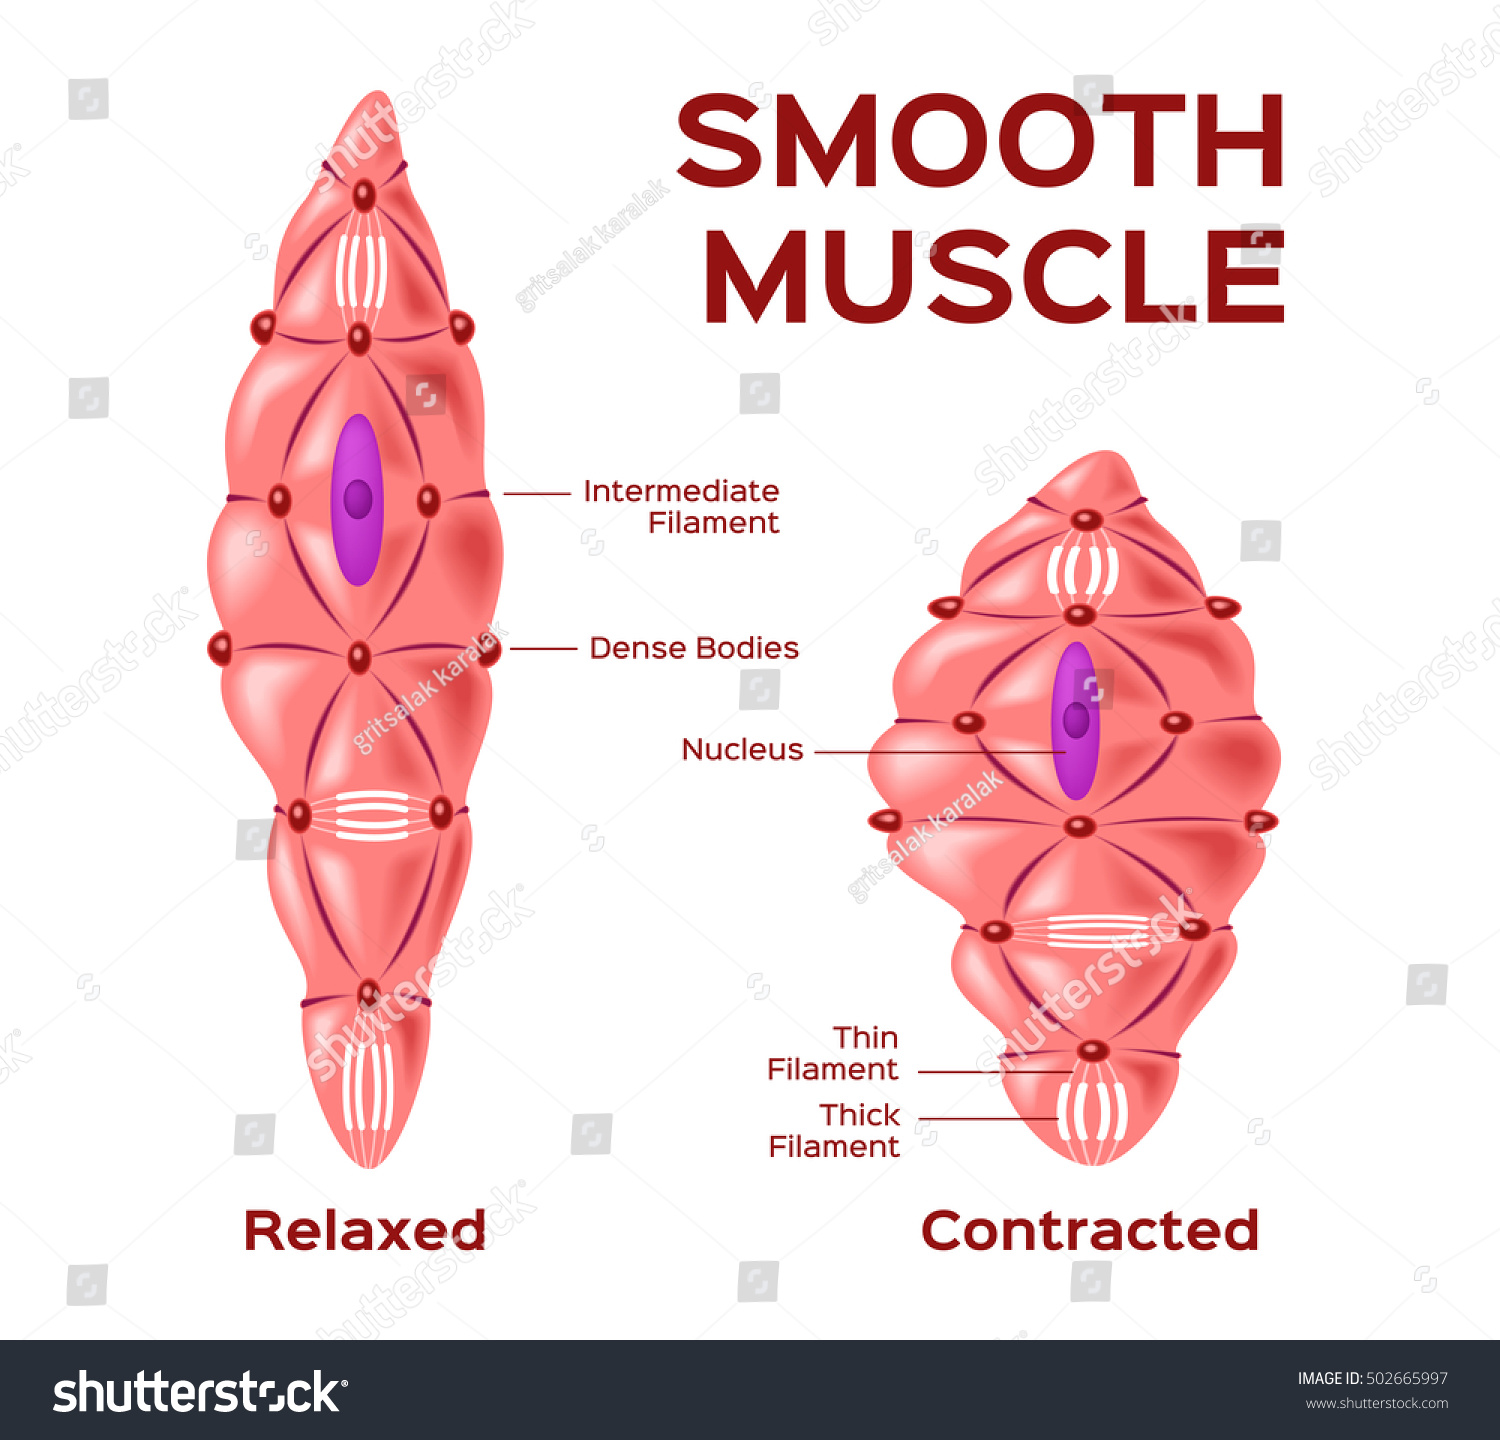 Smooth Muscle Cell Vector Anatomy Relaxed Stock Vector HD (Royalty ...